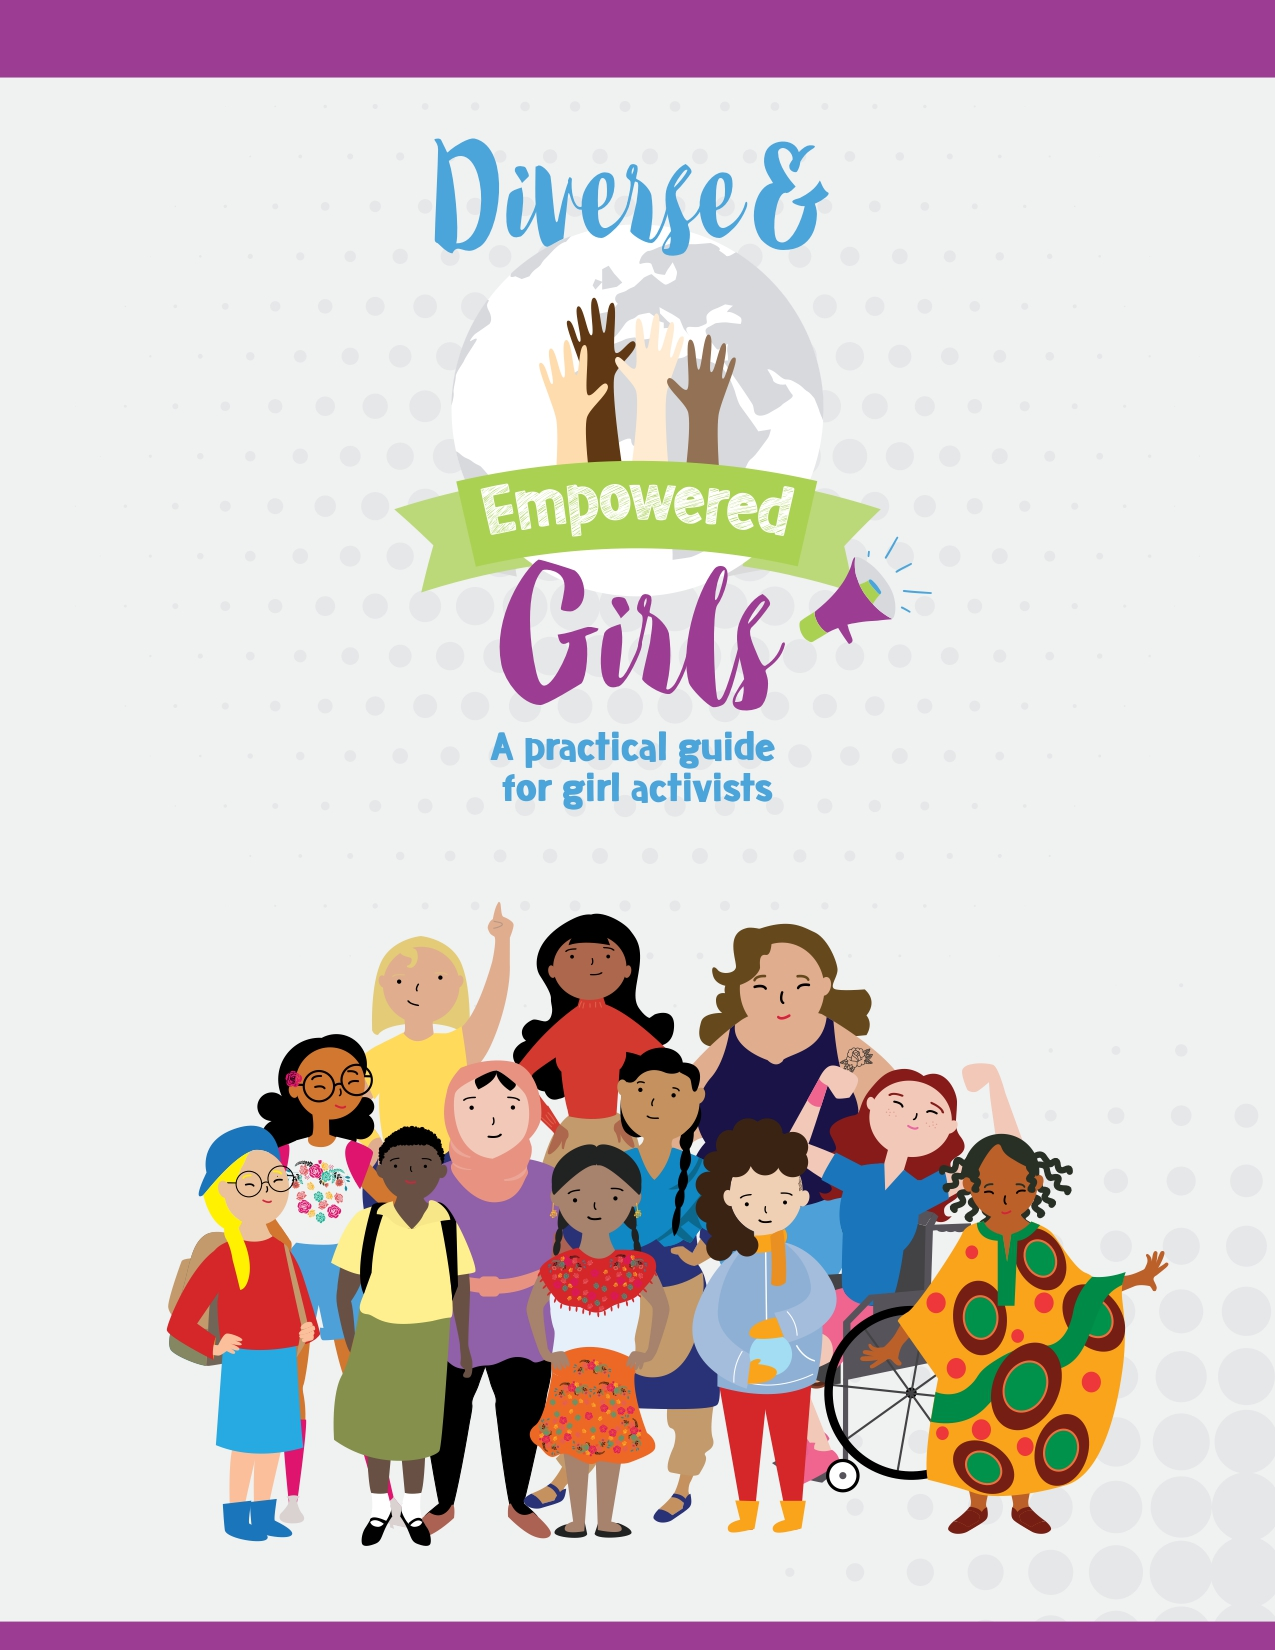 Diverse and empowered girls: A practical guide for girl activists